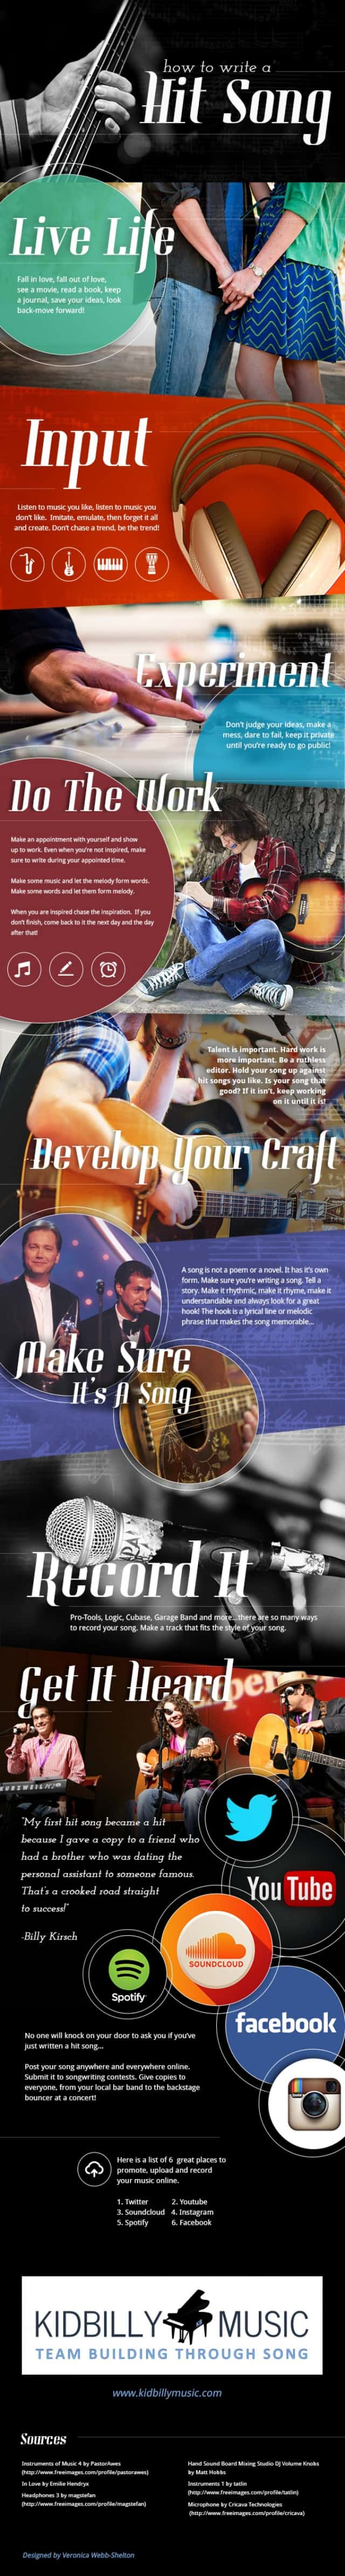 how-to-write-a-hit-song_53bf051303bb8_w1500-640x4776